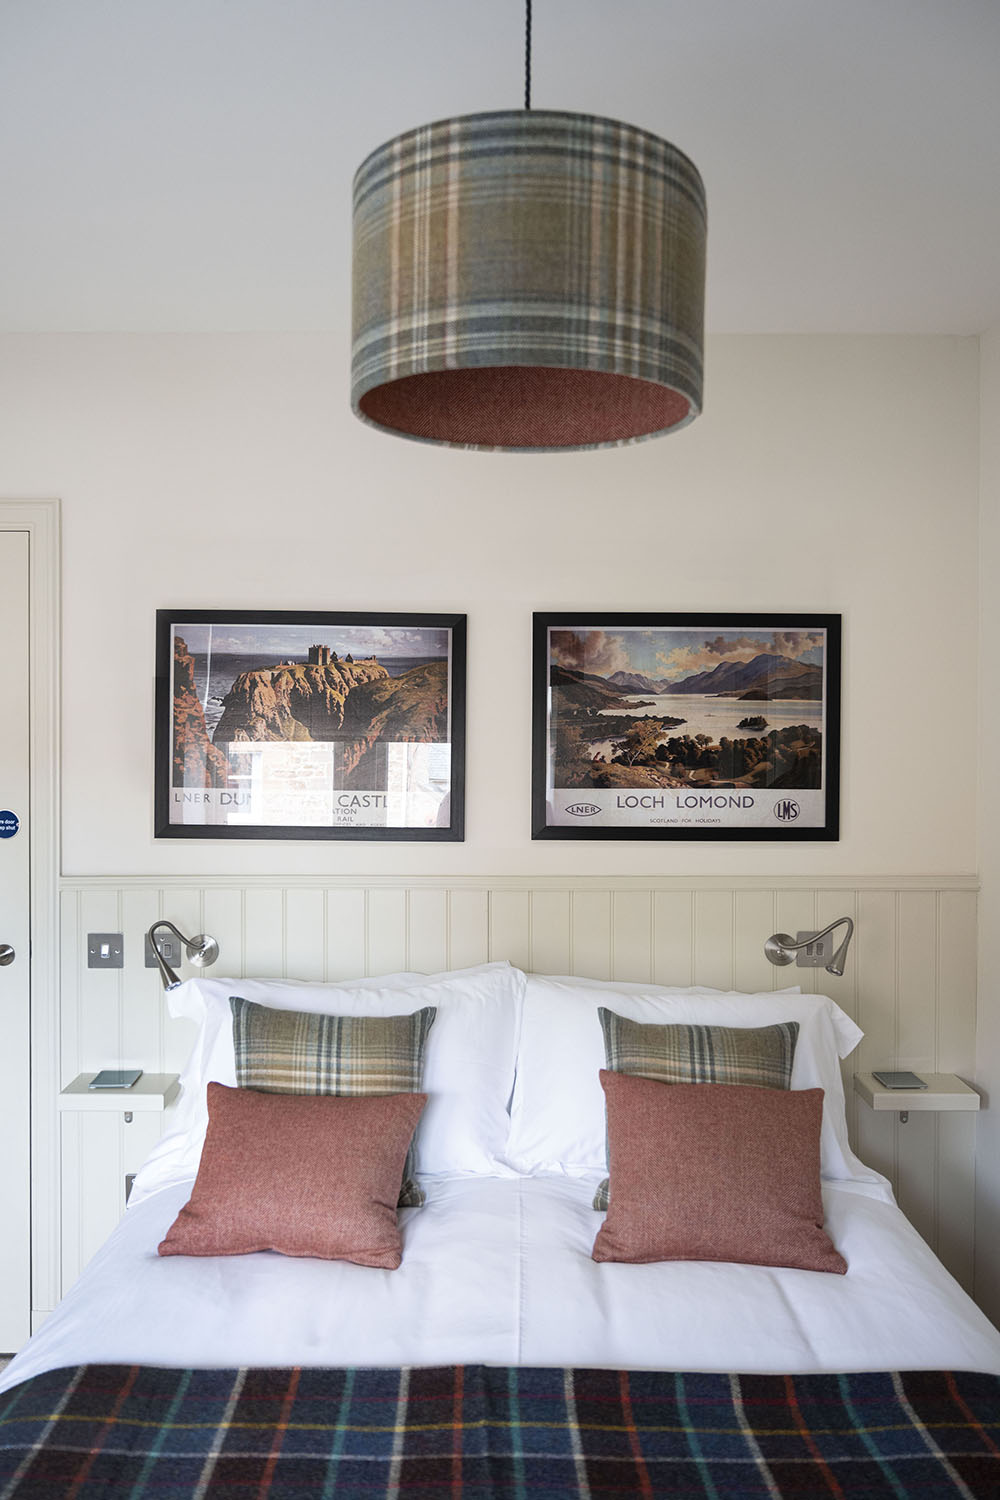 Tree House Serviced Apartment in Inverness - king sized bedroom